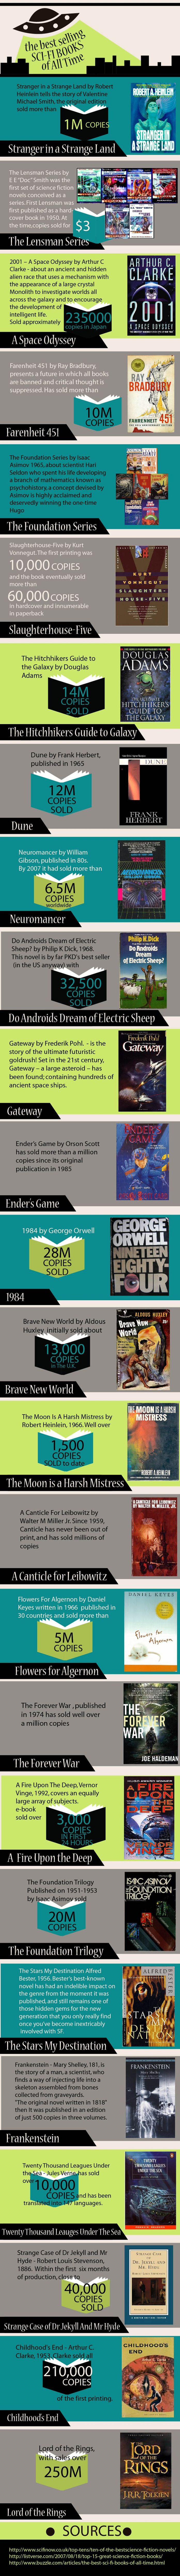 40 best infographics about e books and reading images on pinterest the best selling sci fi books of all time infographic fandeluxe Choice Image